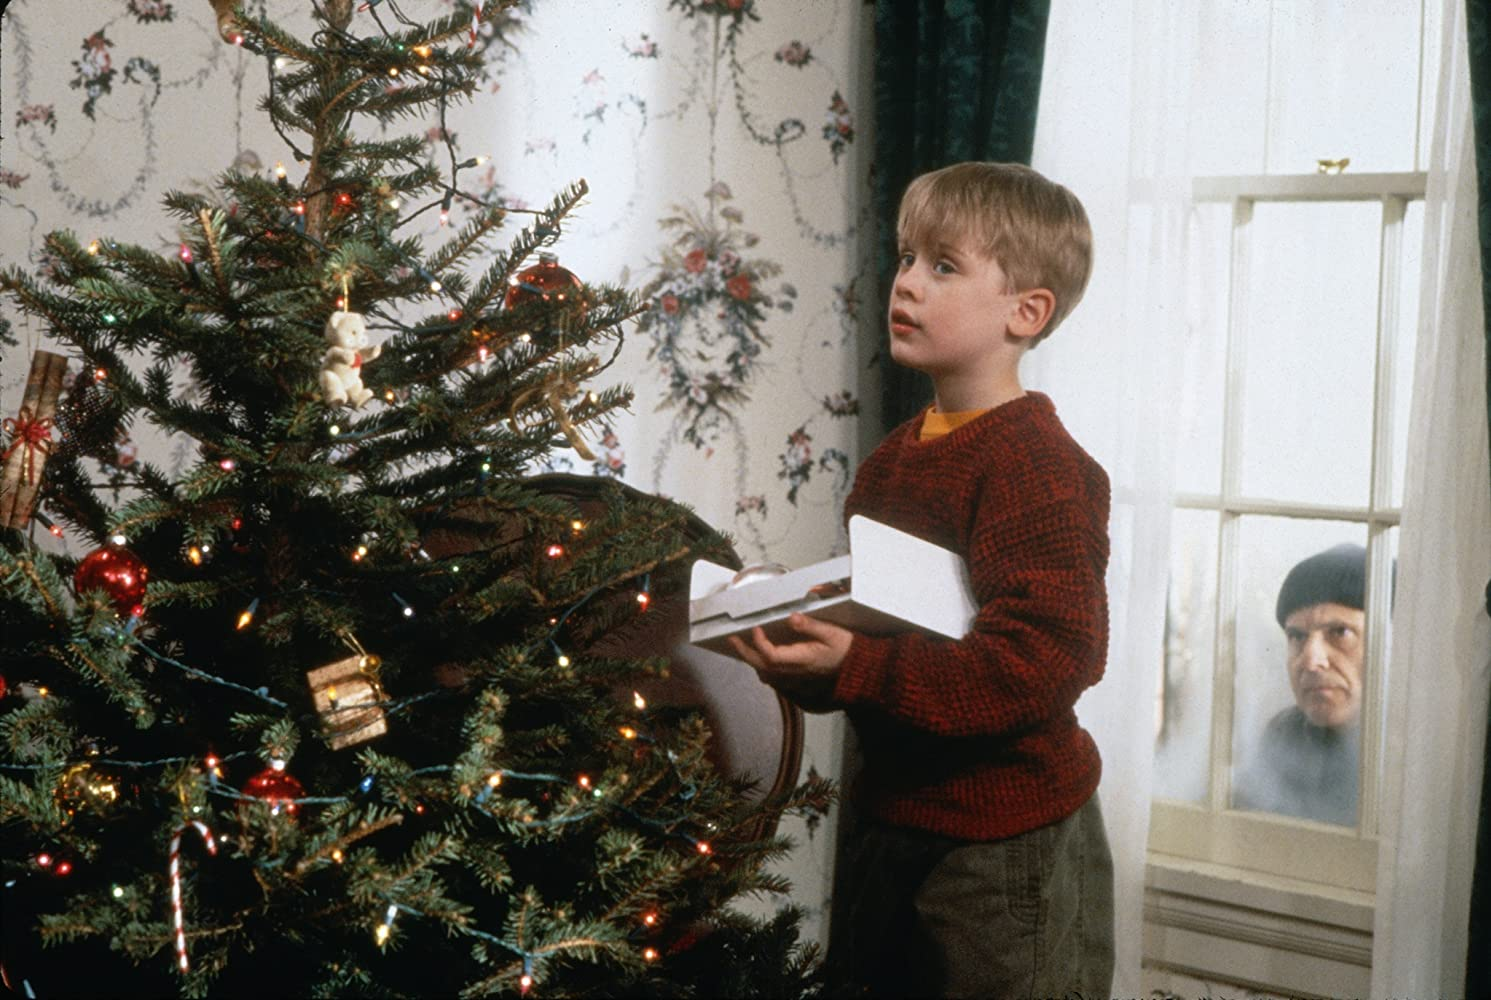 Macaulay Culkin and Joe Pesci in Home Alone (1990)